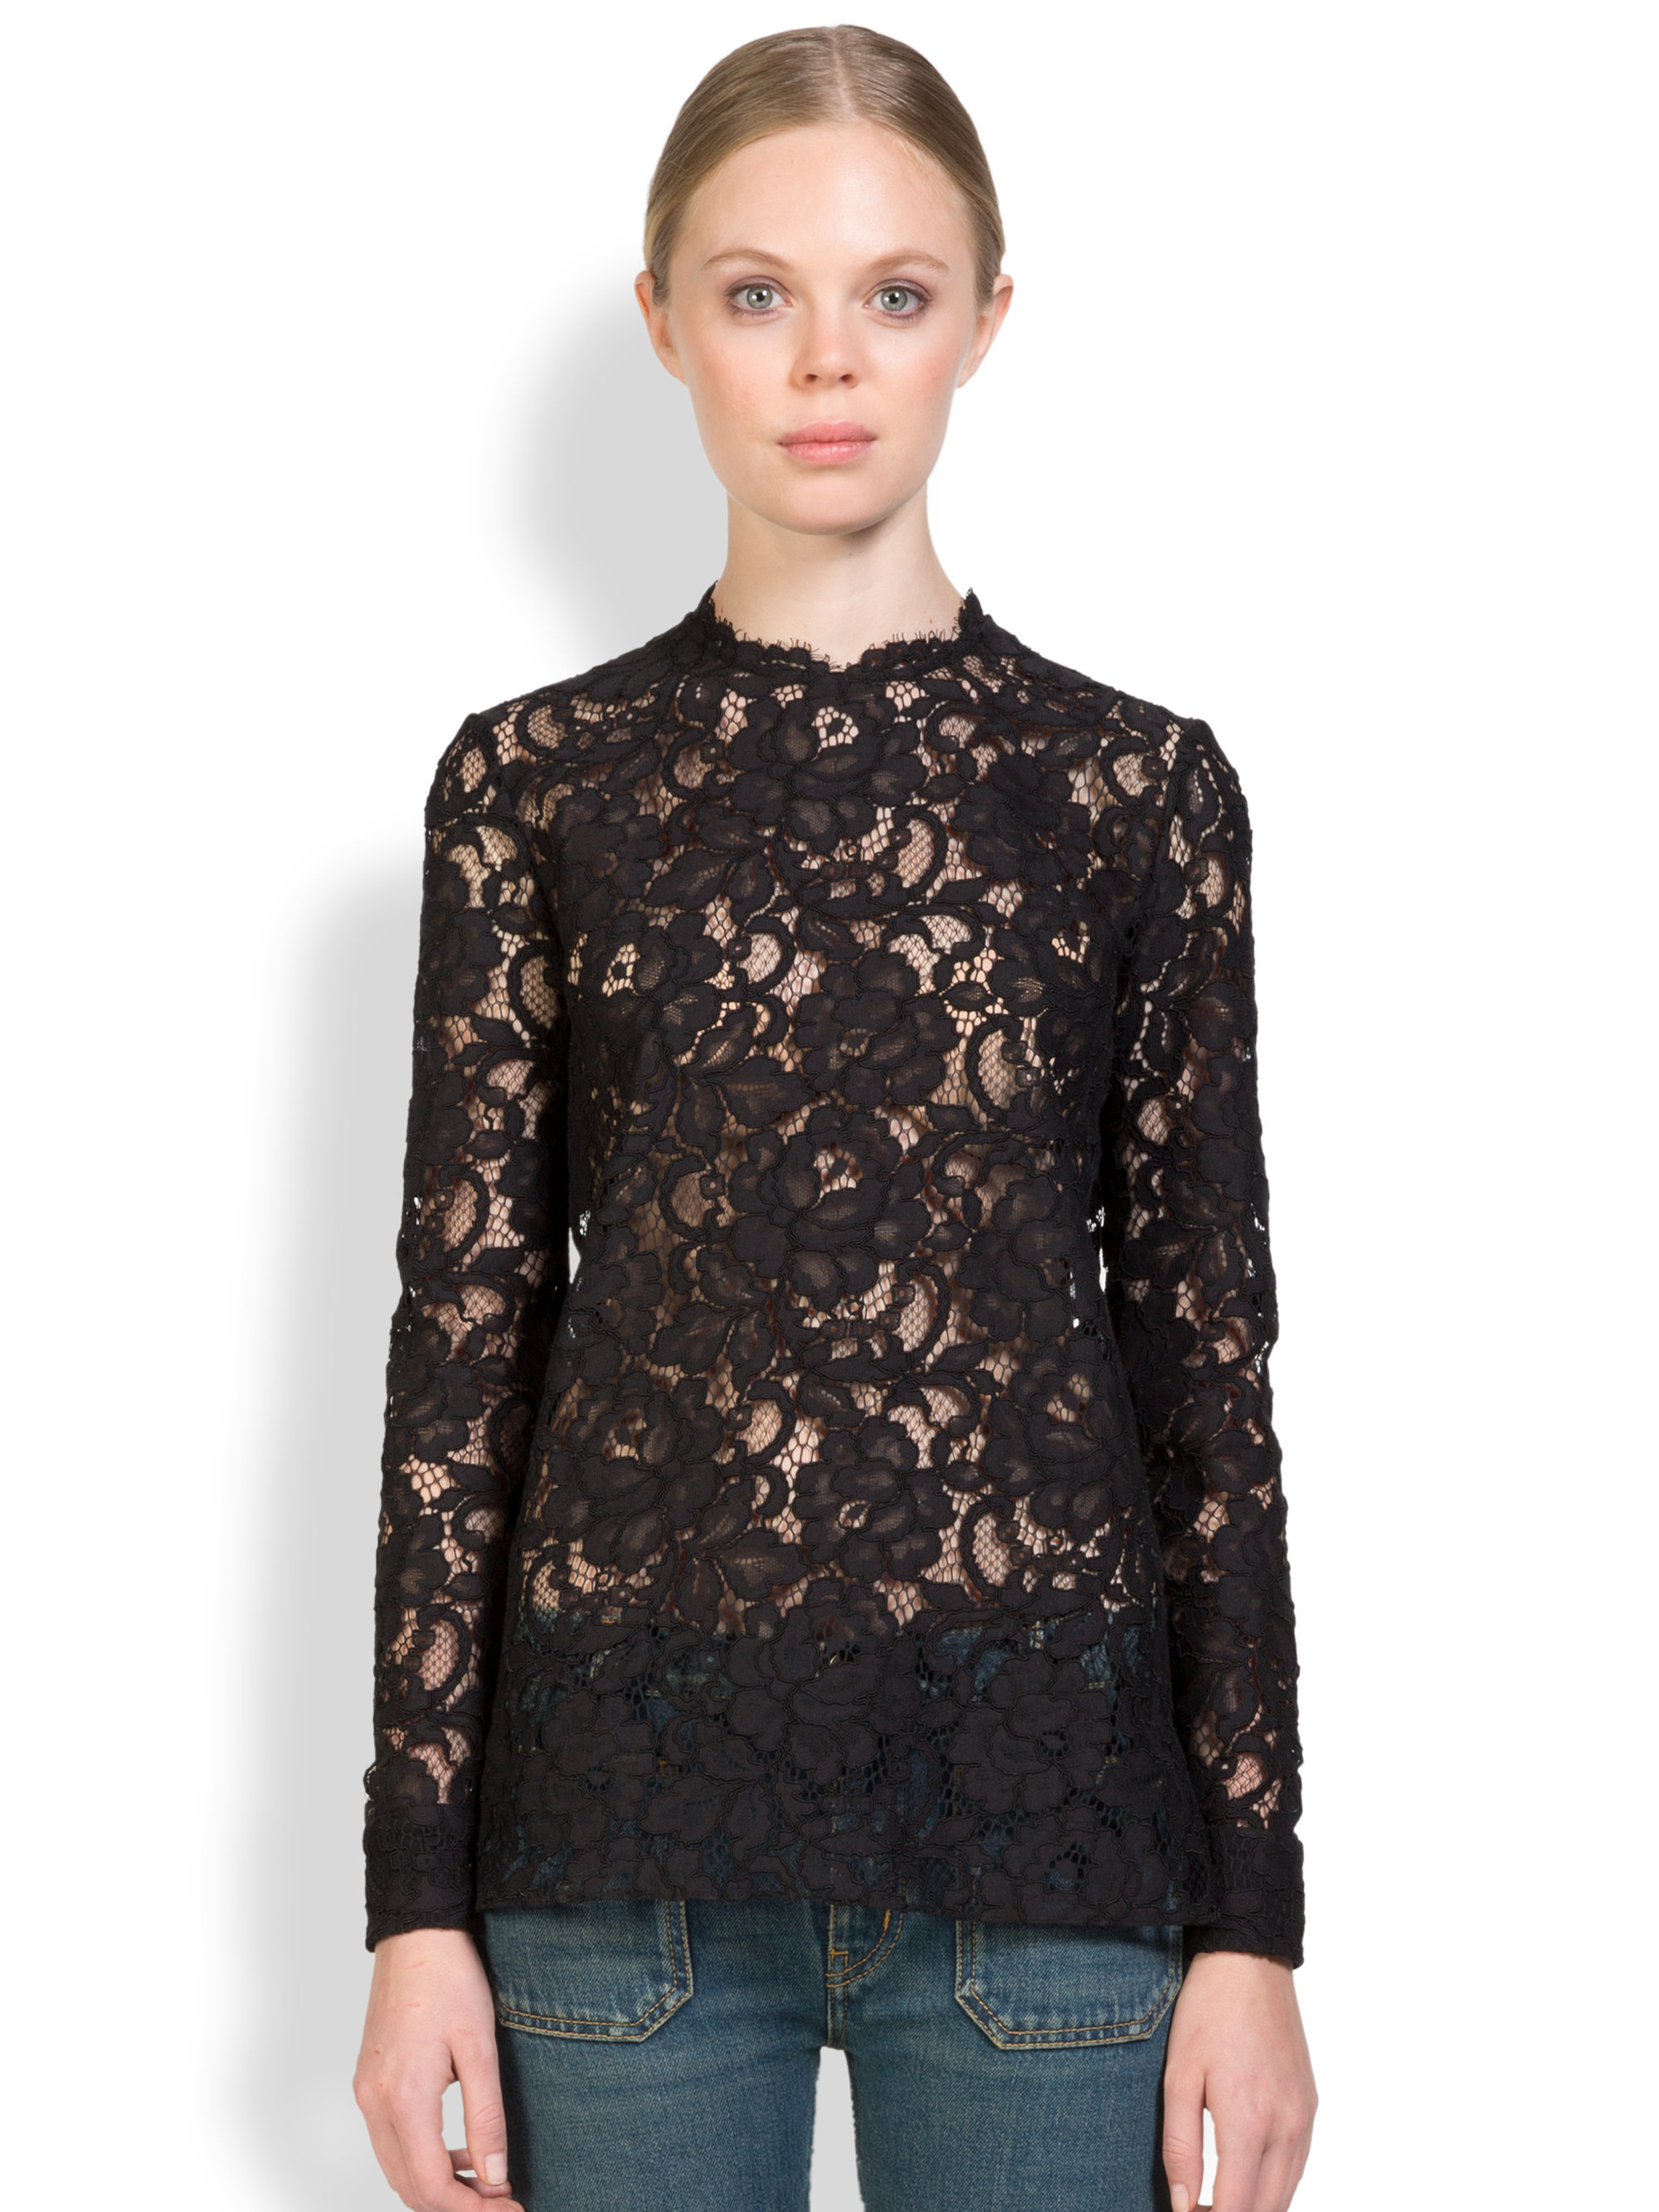 Find great deals on eBay for long sleeve lace tops. Shop with confidence.